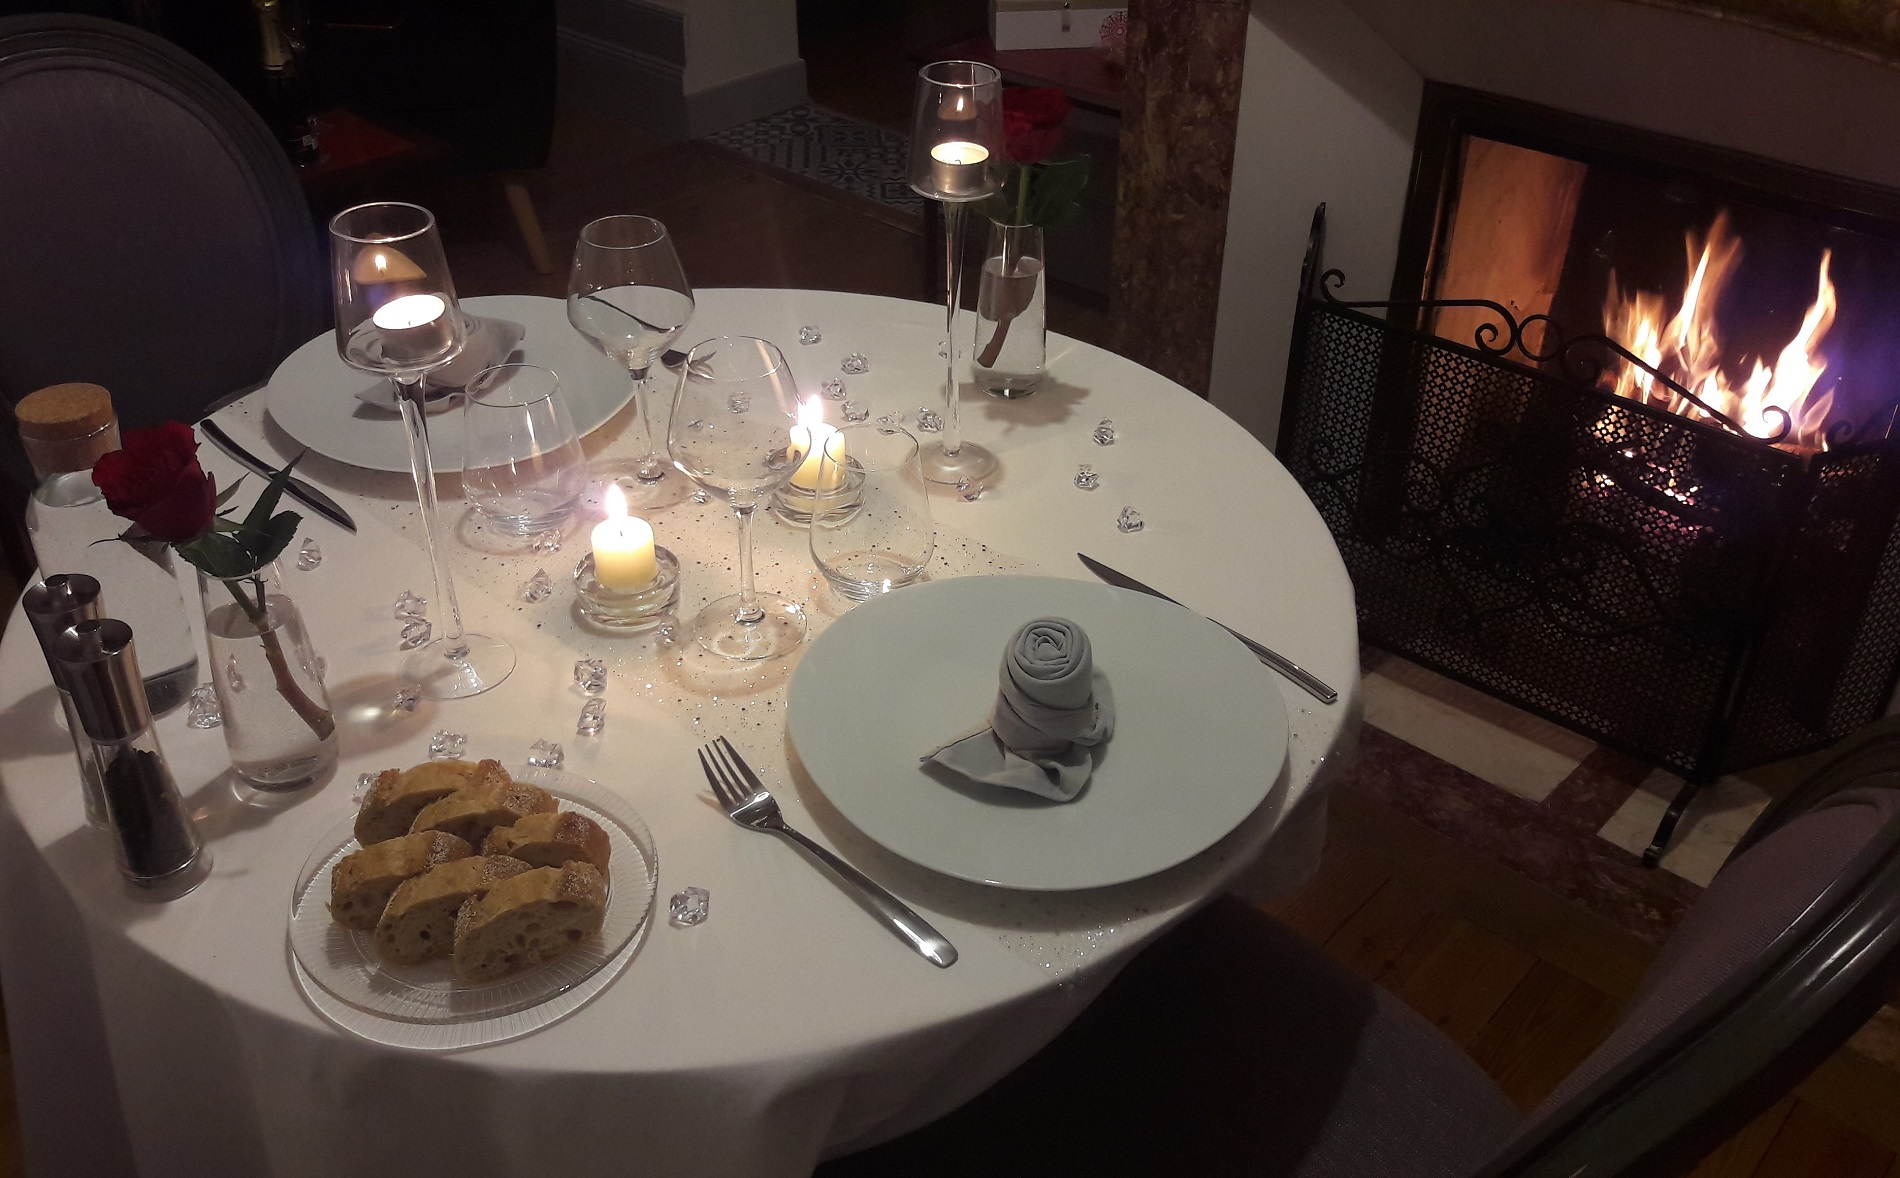 Elegant table with quality plates and glasses, romantic setting with candles and fireplace